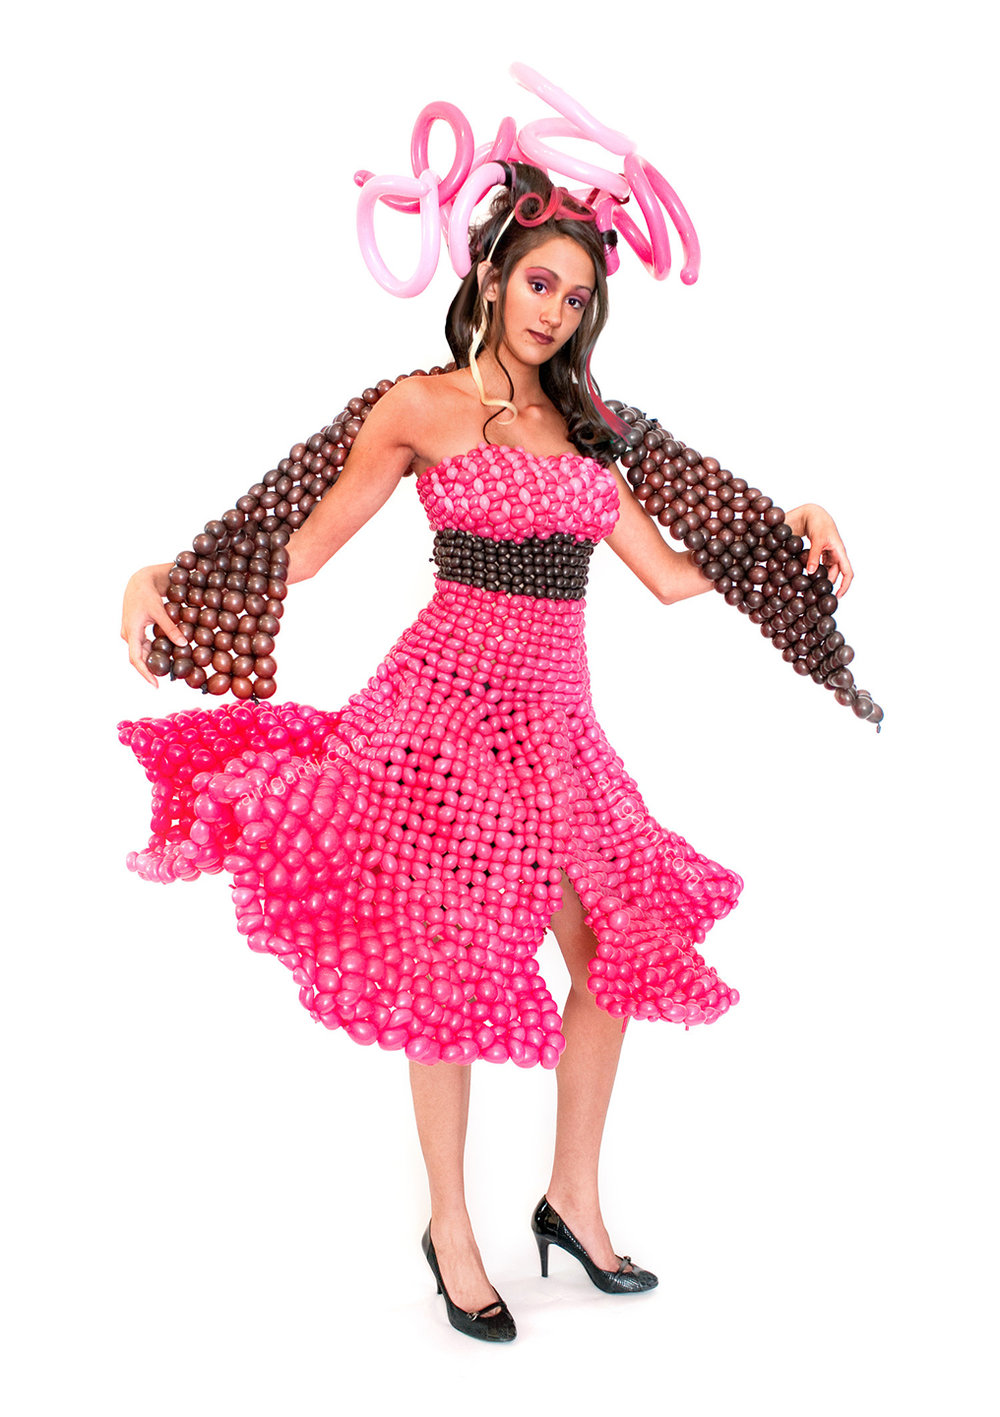 Airigami-pink-balloon-dress.jpg